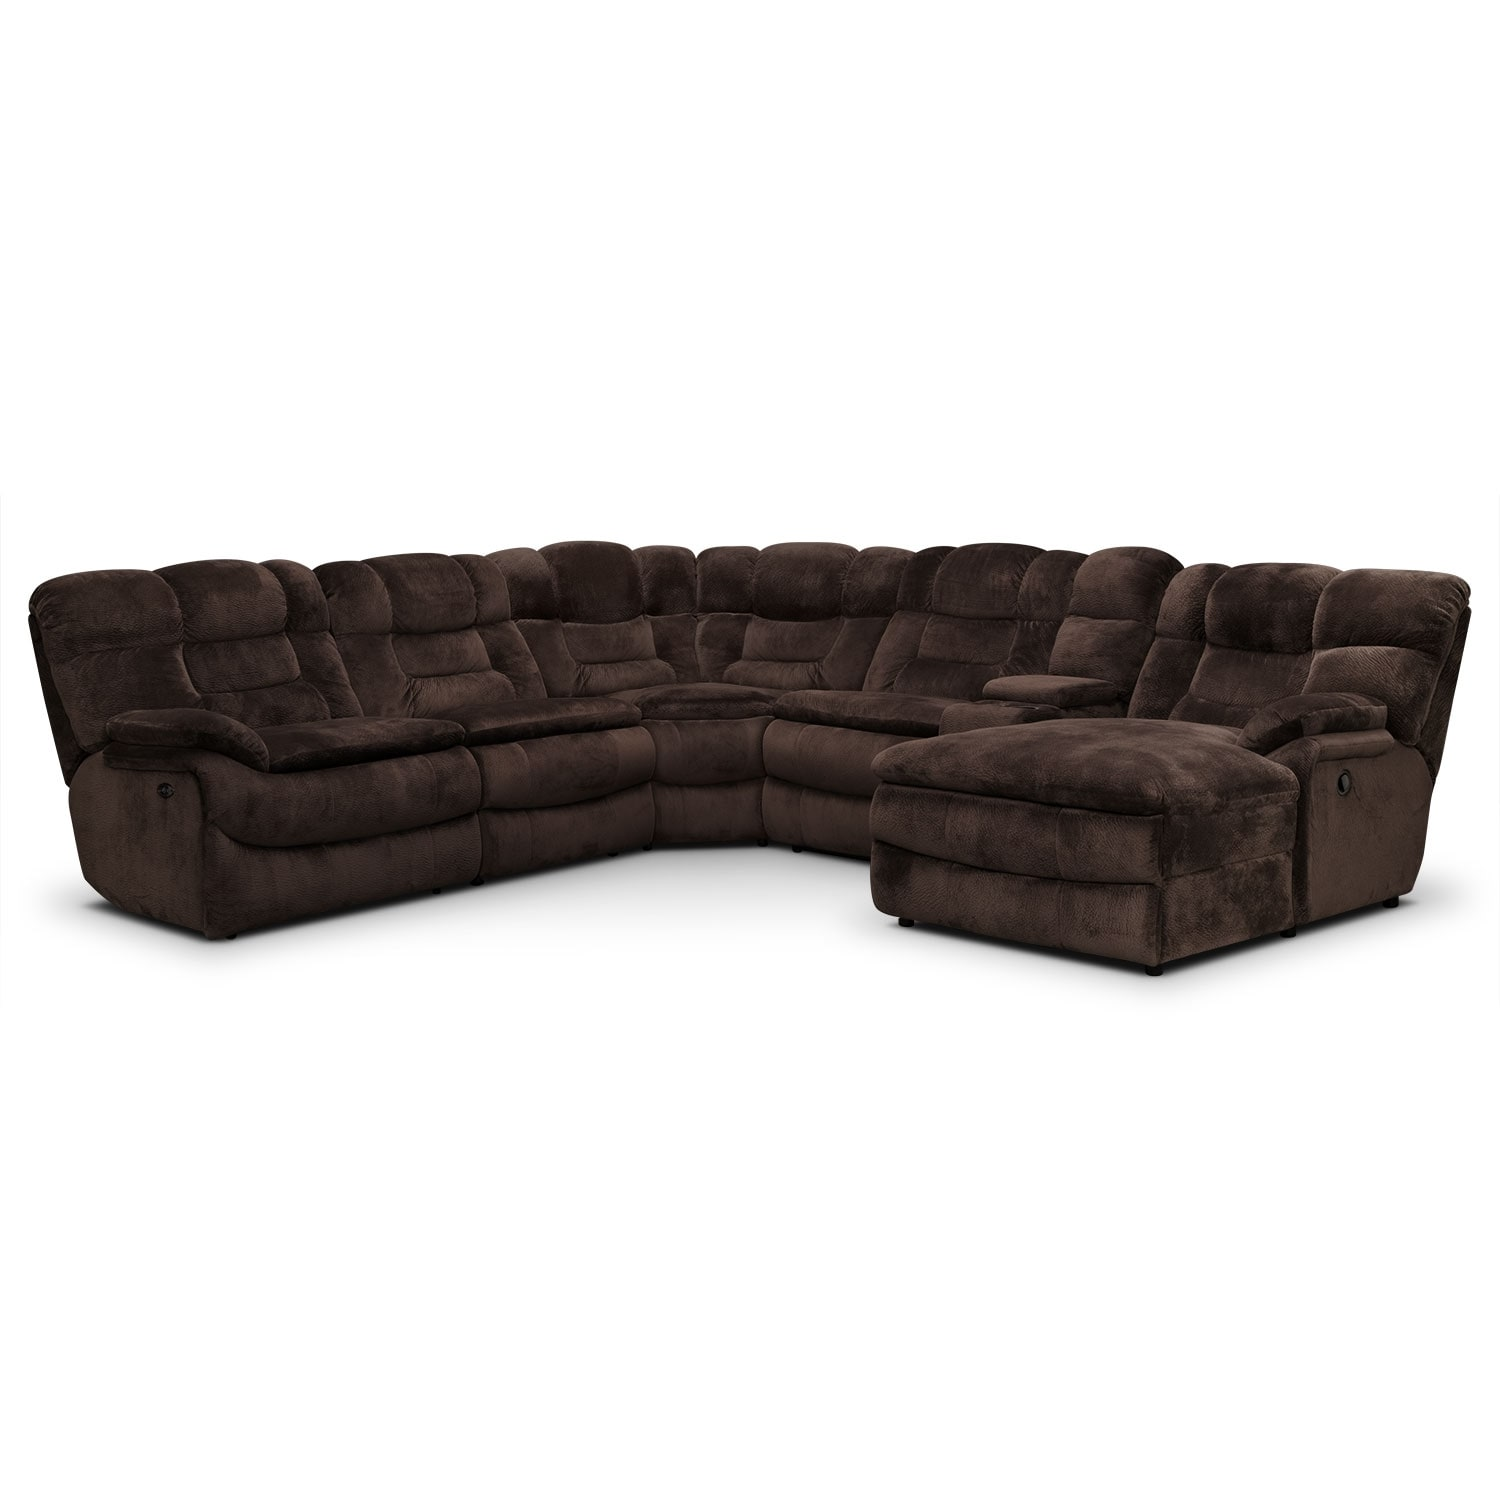 Big Softie 6 Piece Power Reclining Sectional With Right Facing Chaise    Chocolate